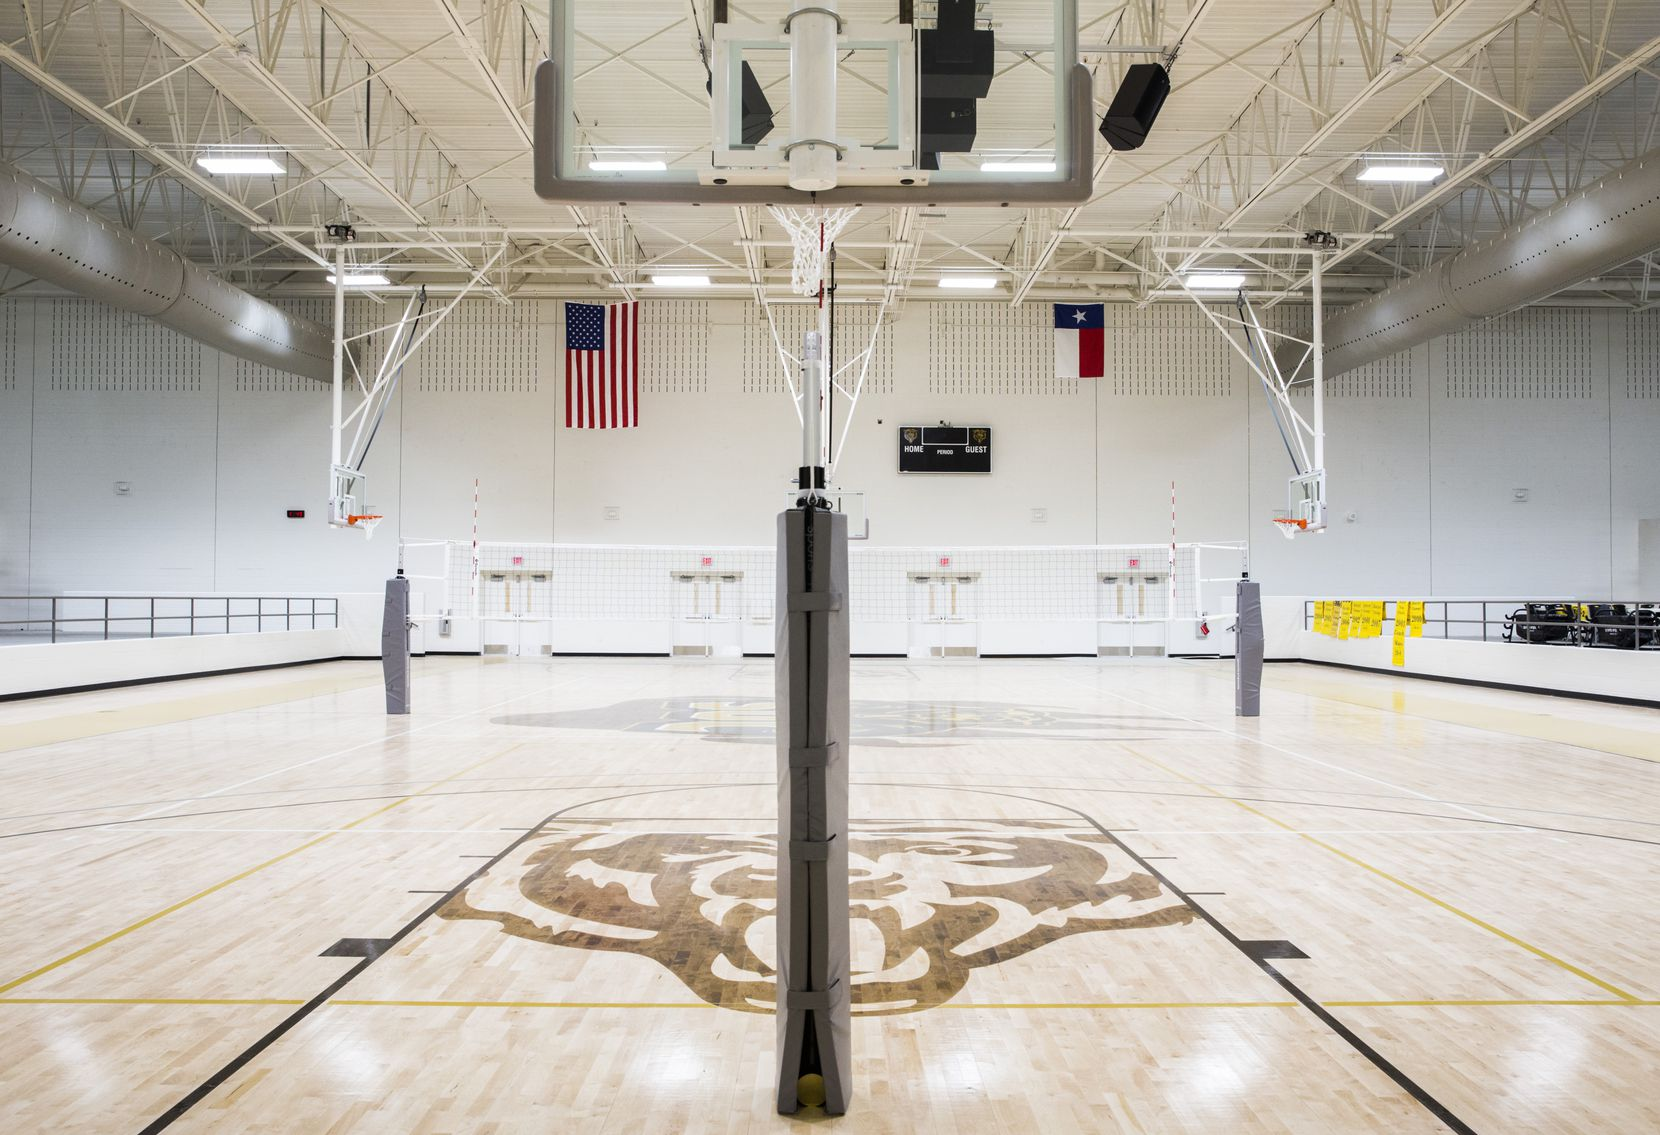 A new gym is almost complete on Thursday, December 19, 2019 at South Oak Cliff High School in Dallas. Workers are finishing a two-year, $52 million renovation to the campus. (Ashley Landis/The Dallas Morning News)